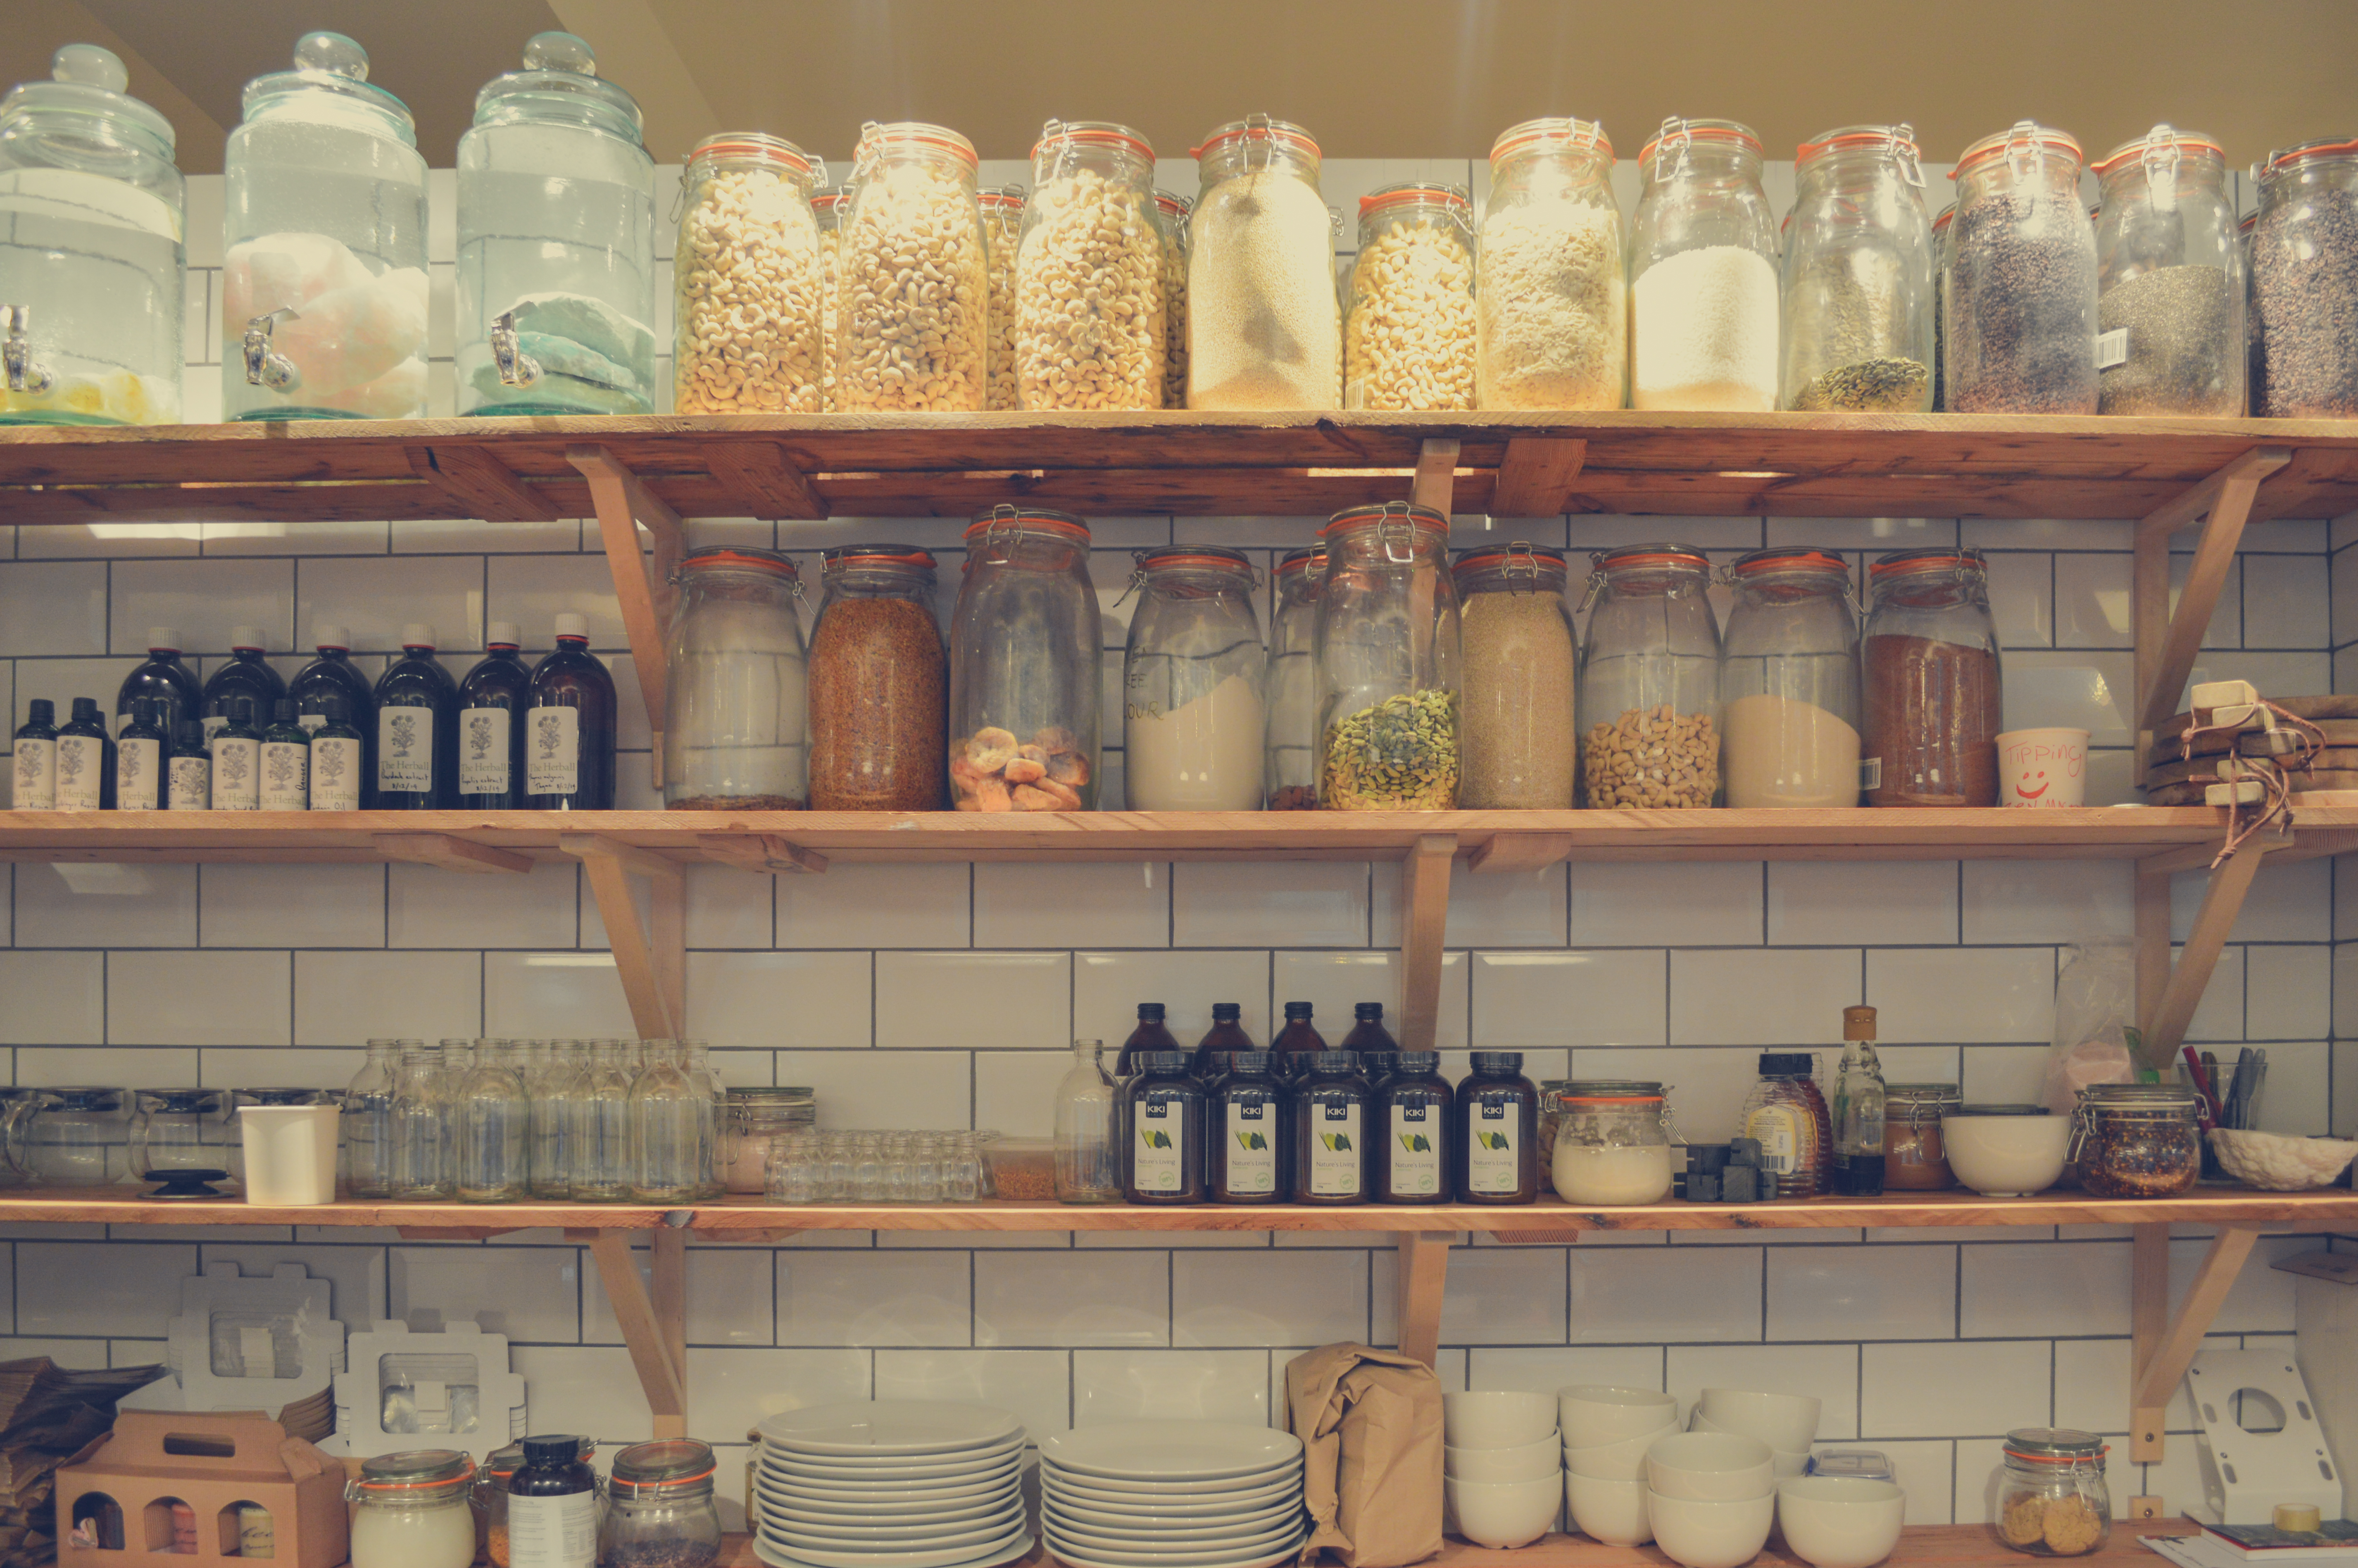 An image of open shelving in a kitchen, with objects sealed and stored high above a child's reach